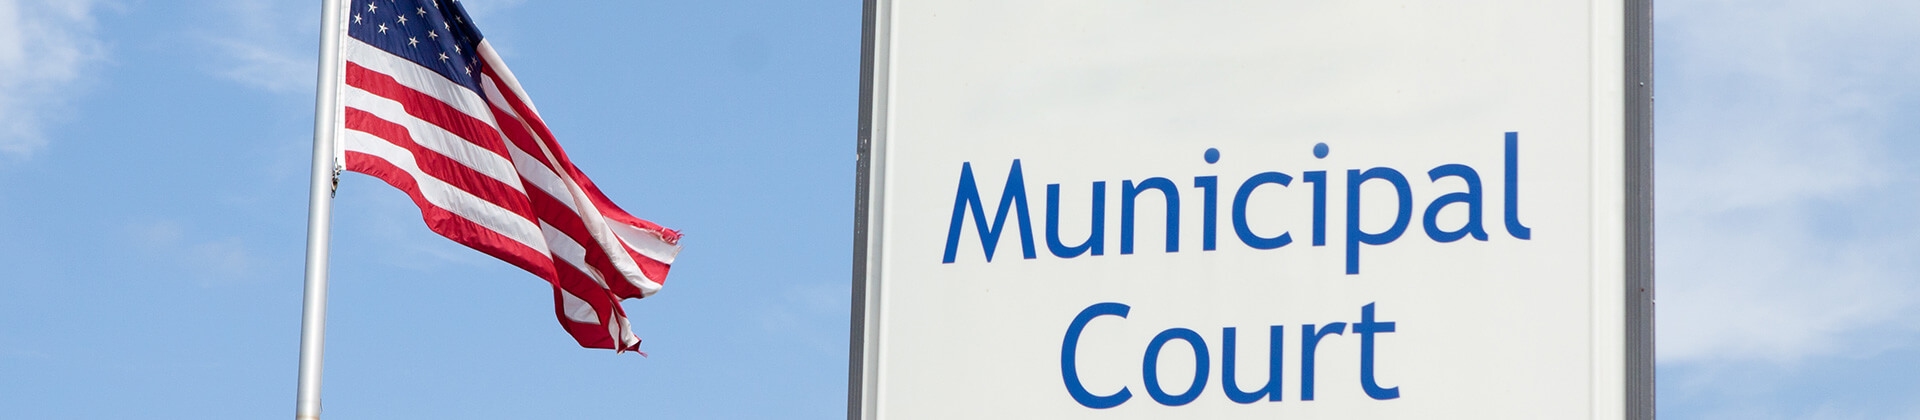 Municipal court sign with American flag